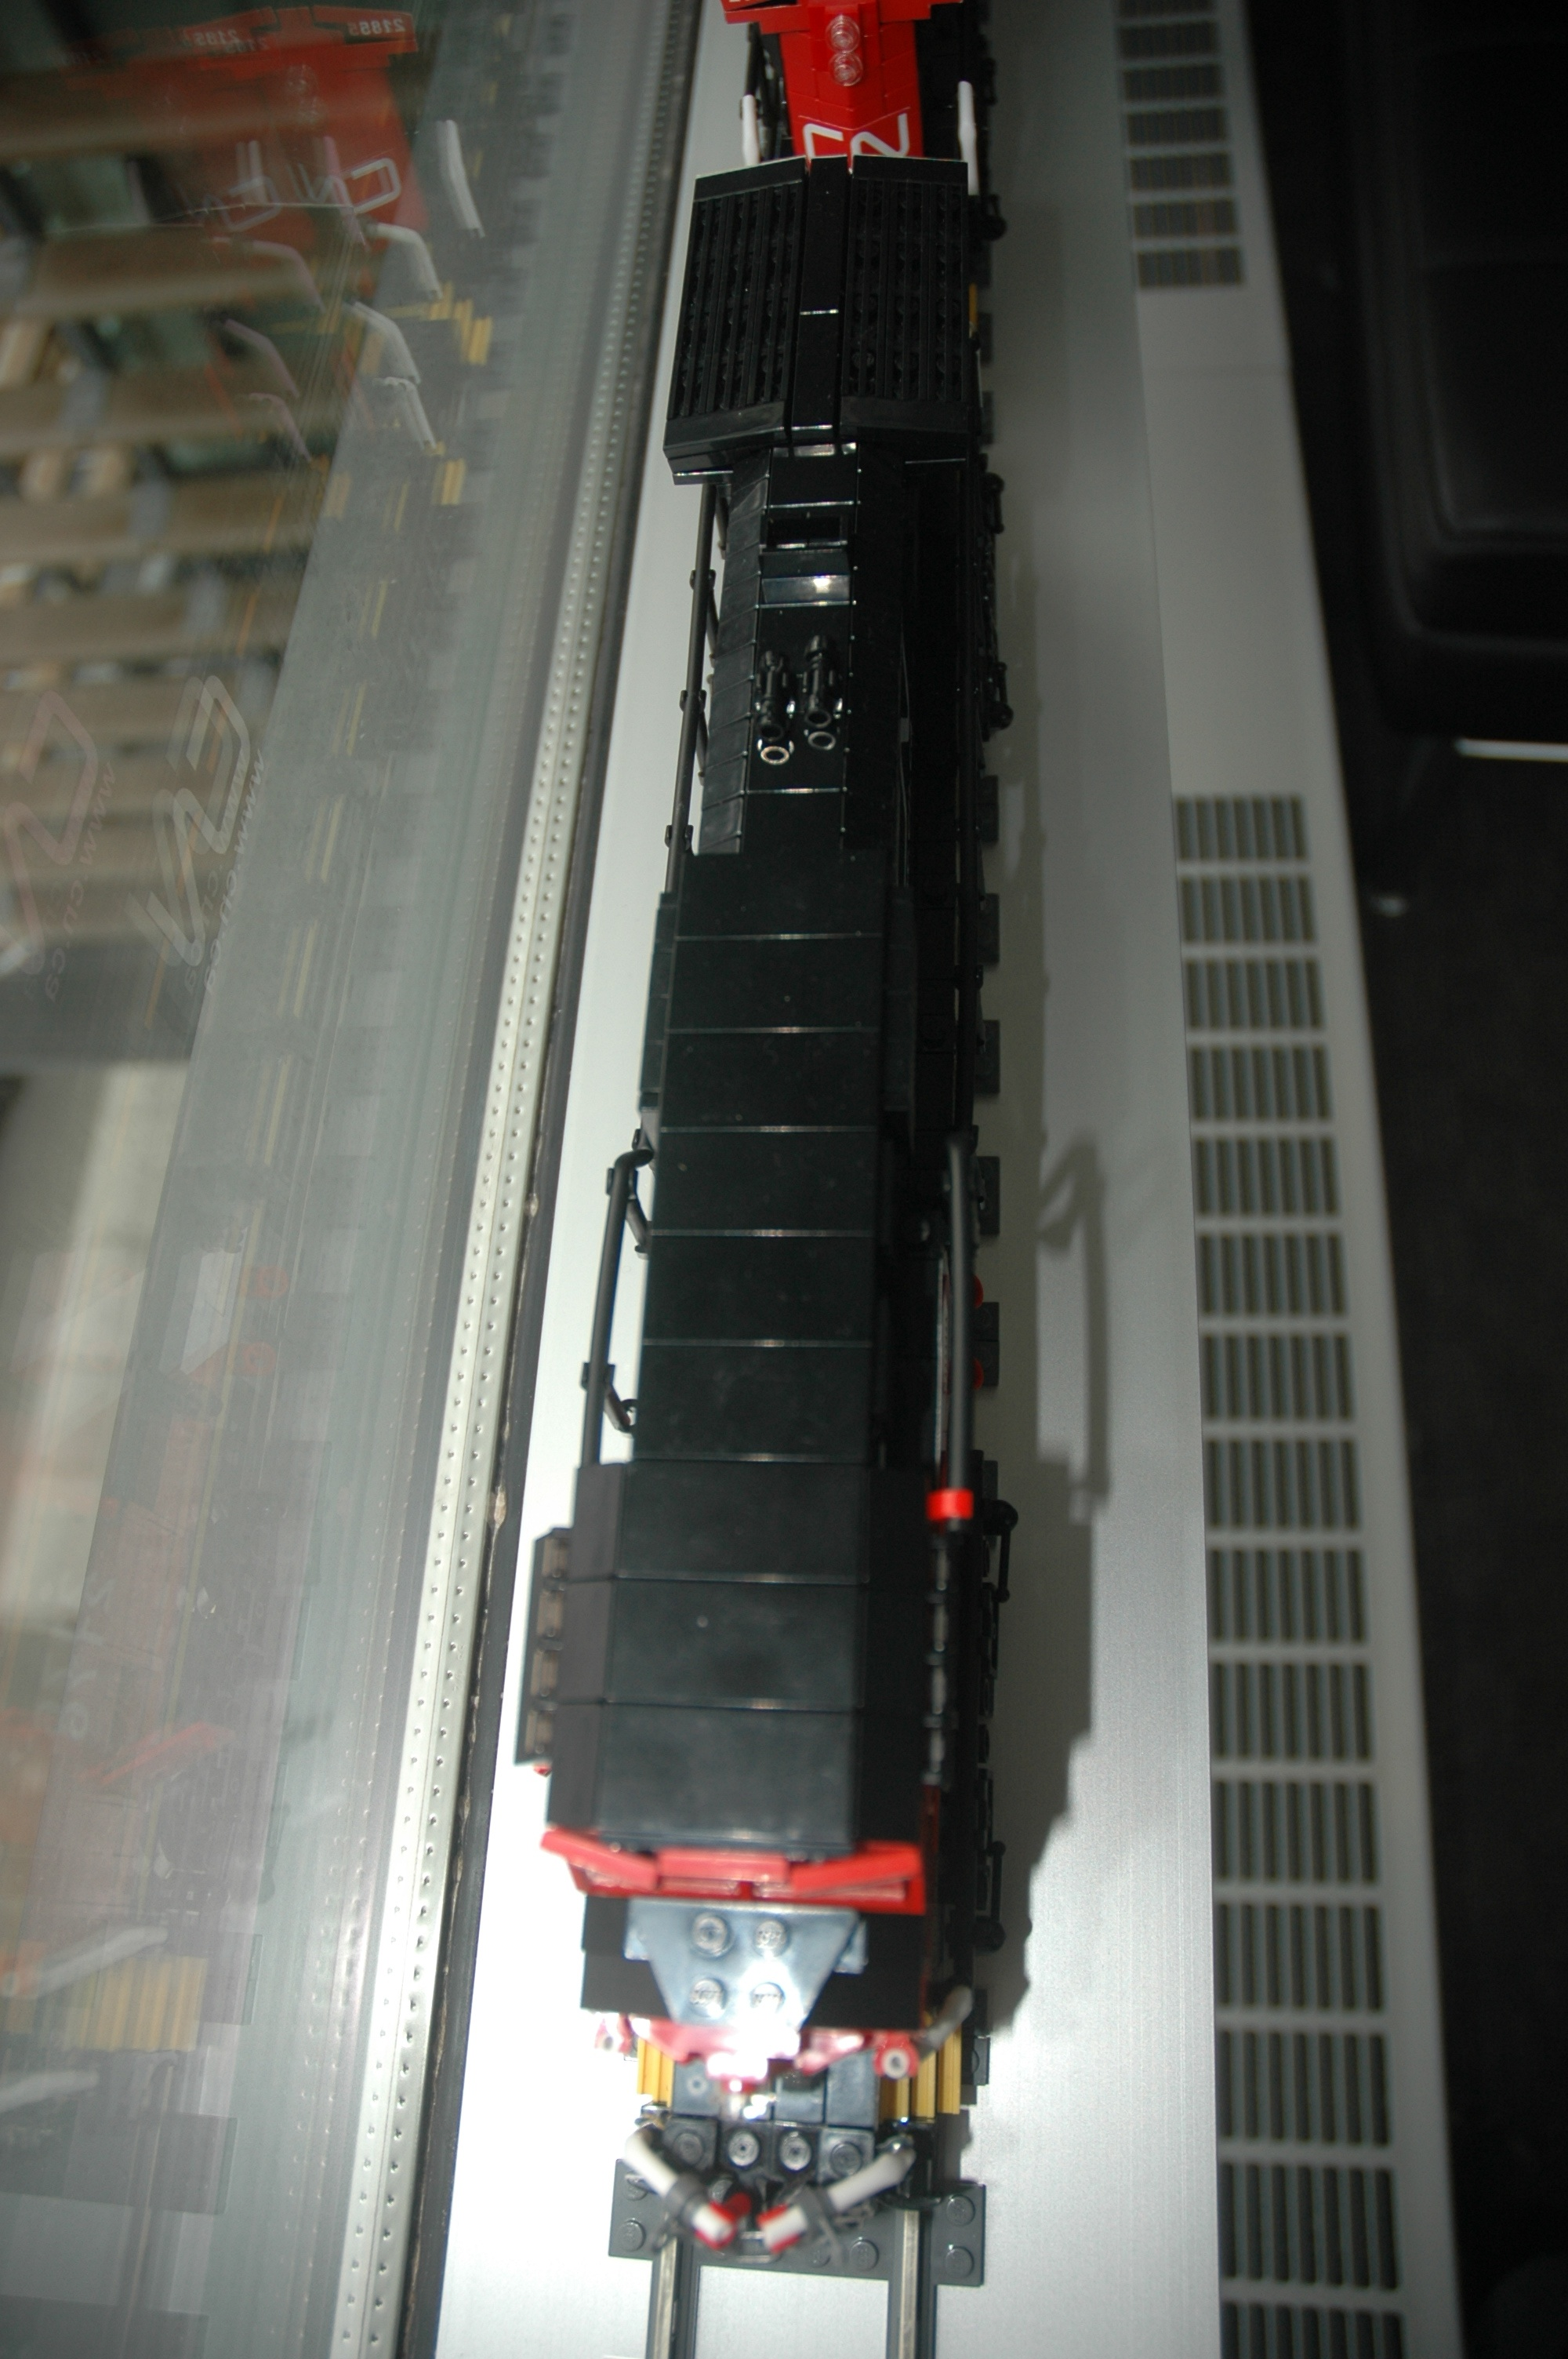 lego_cn_freight_engine_c40-8w_dash_8_top.jpg